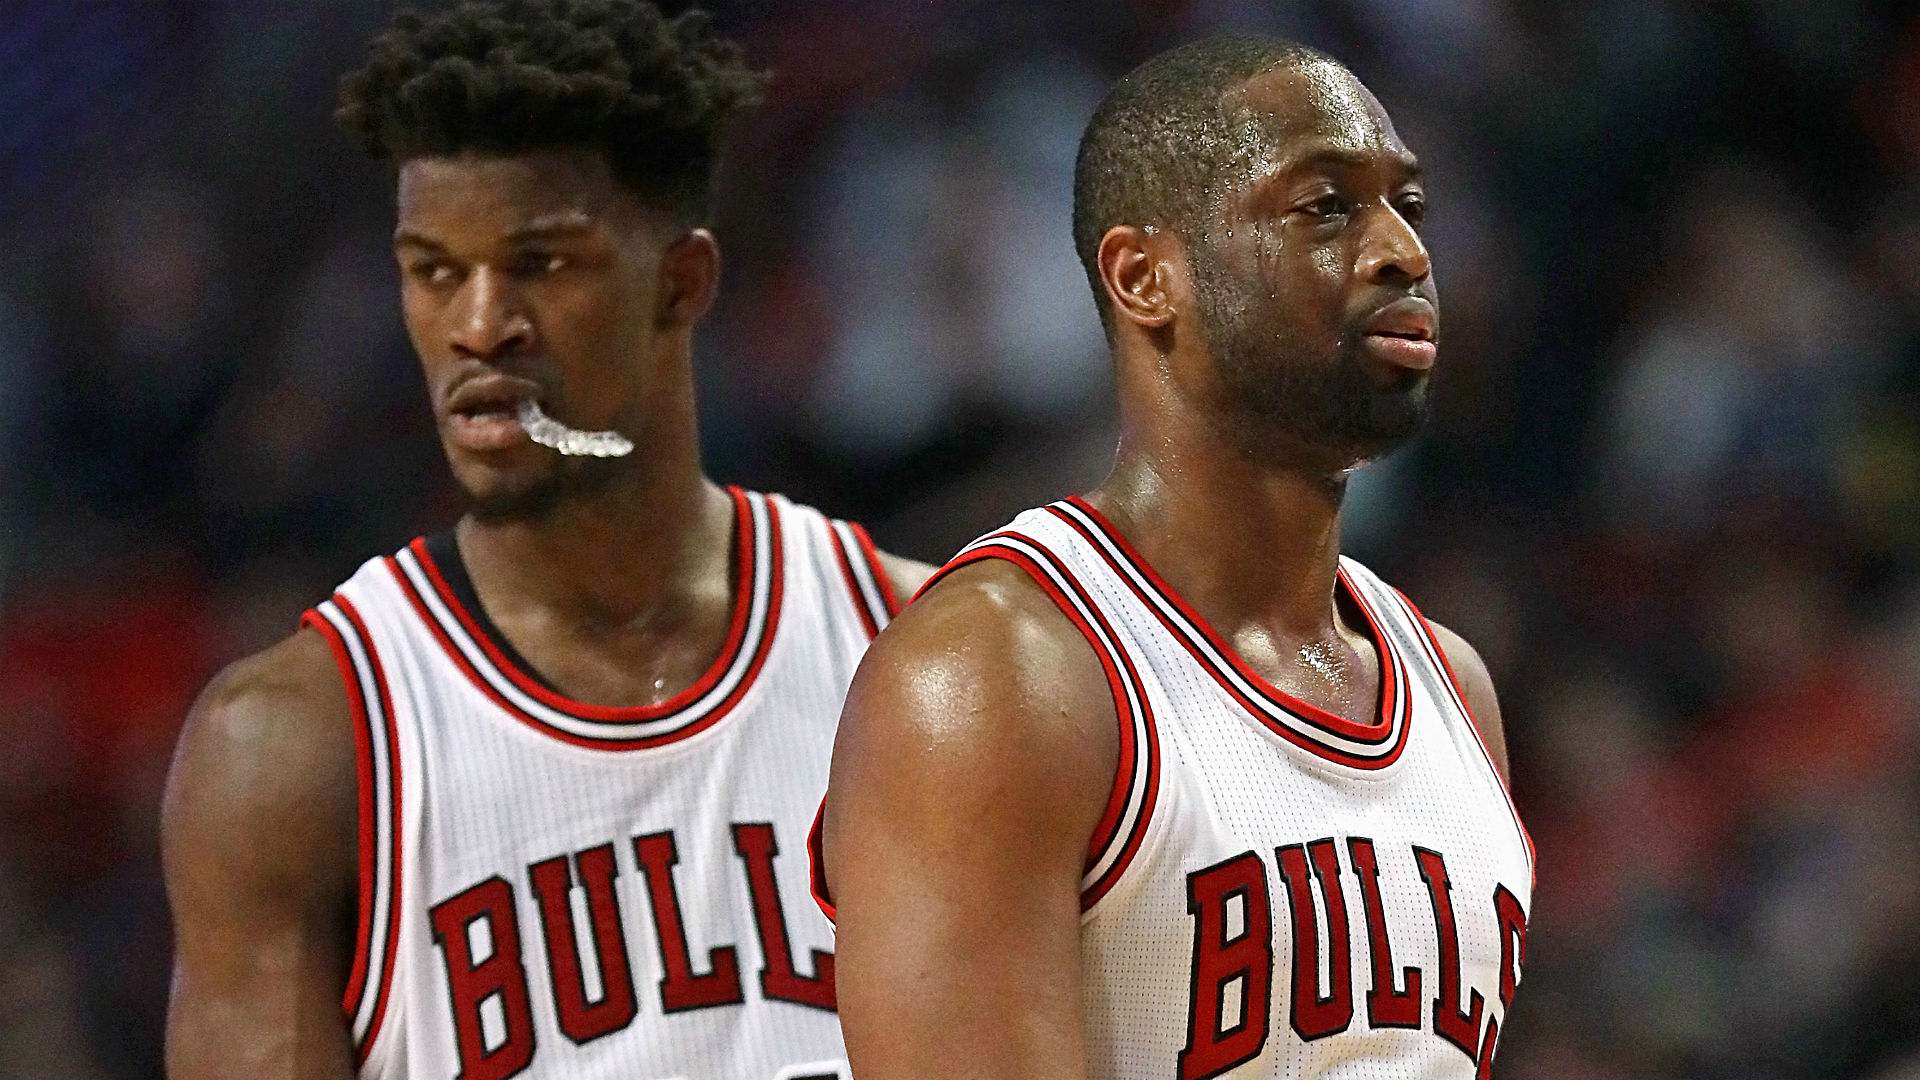 Di did lebron james become famous - Butler Wade 012517 Getty Ftr Jpg